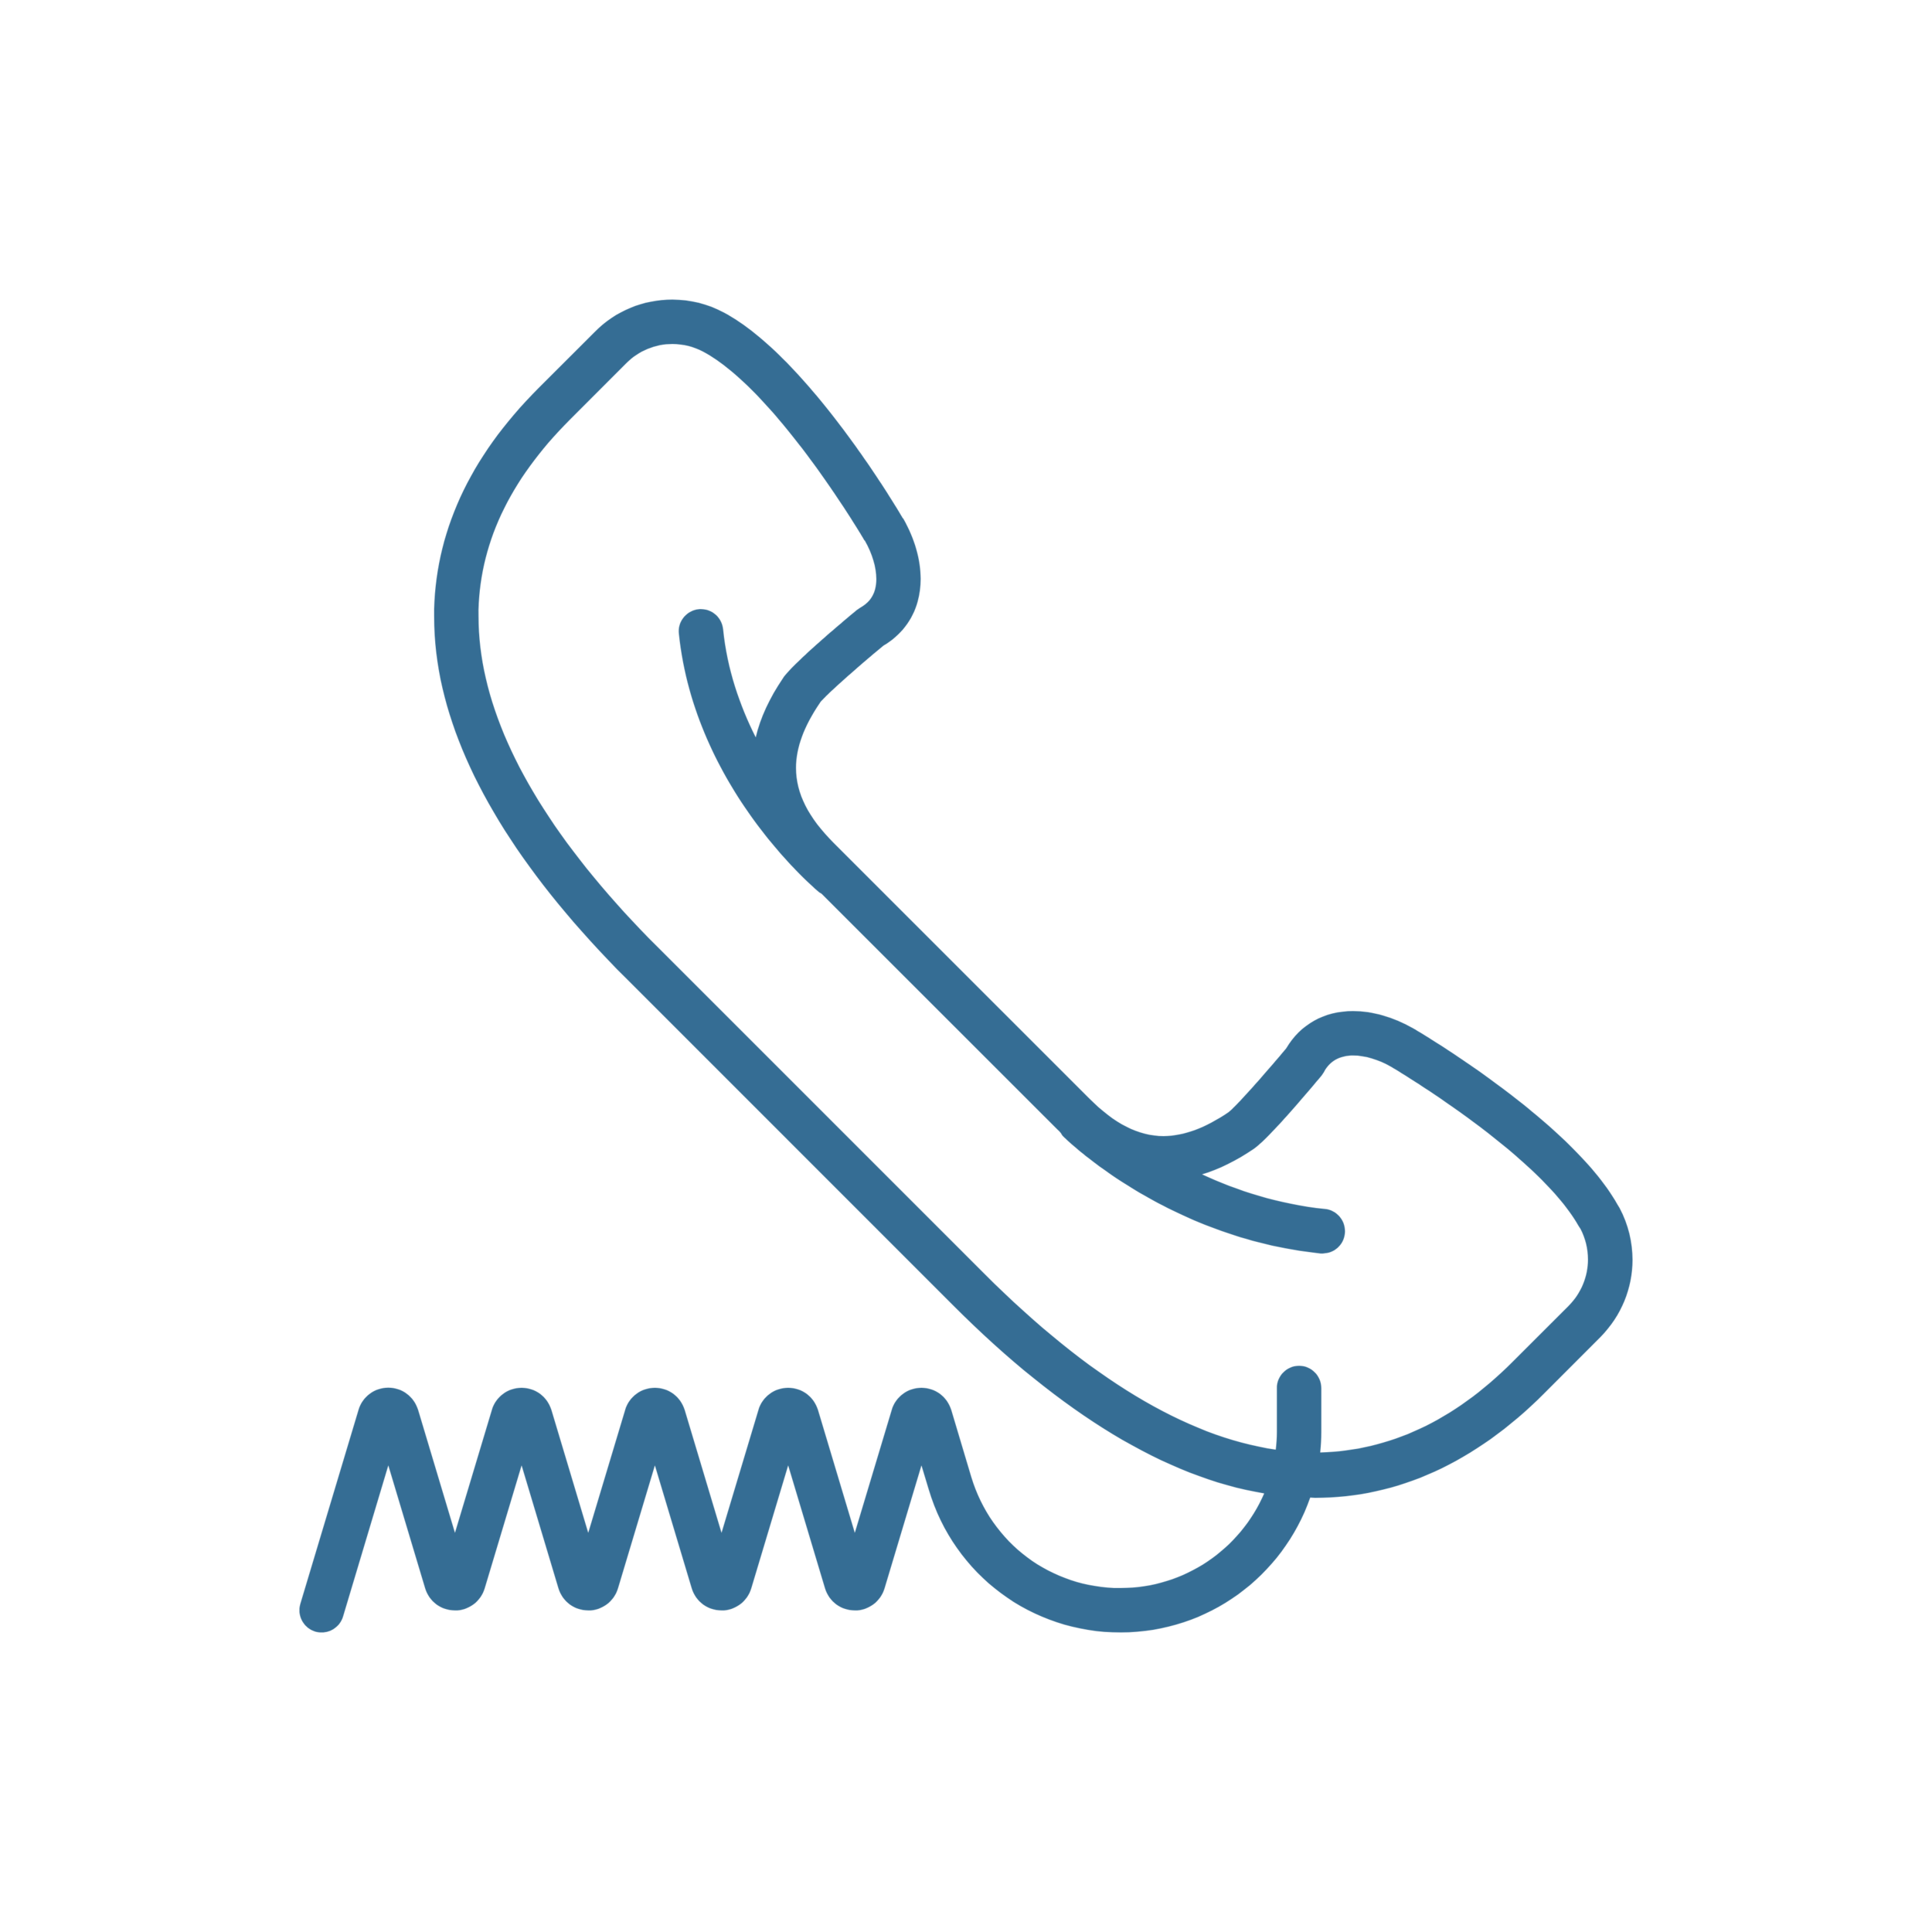 noun_Wired Phone_320225.png